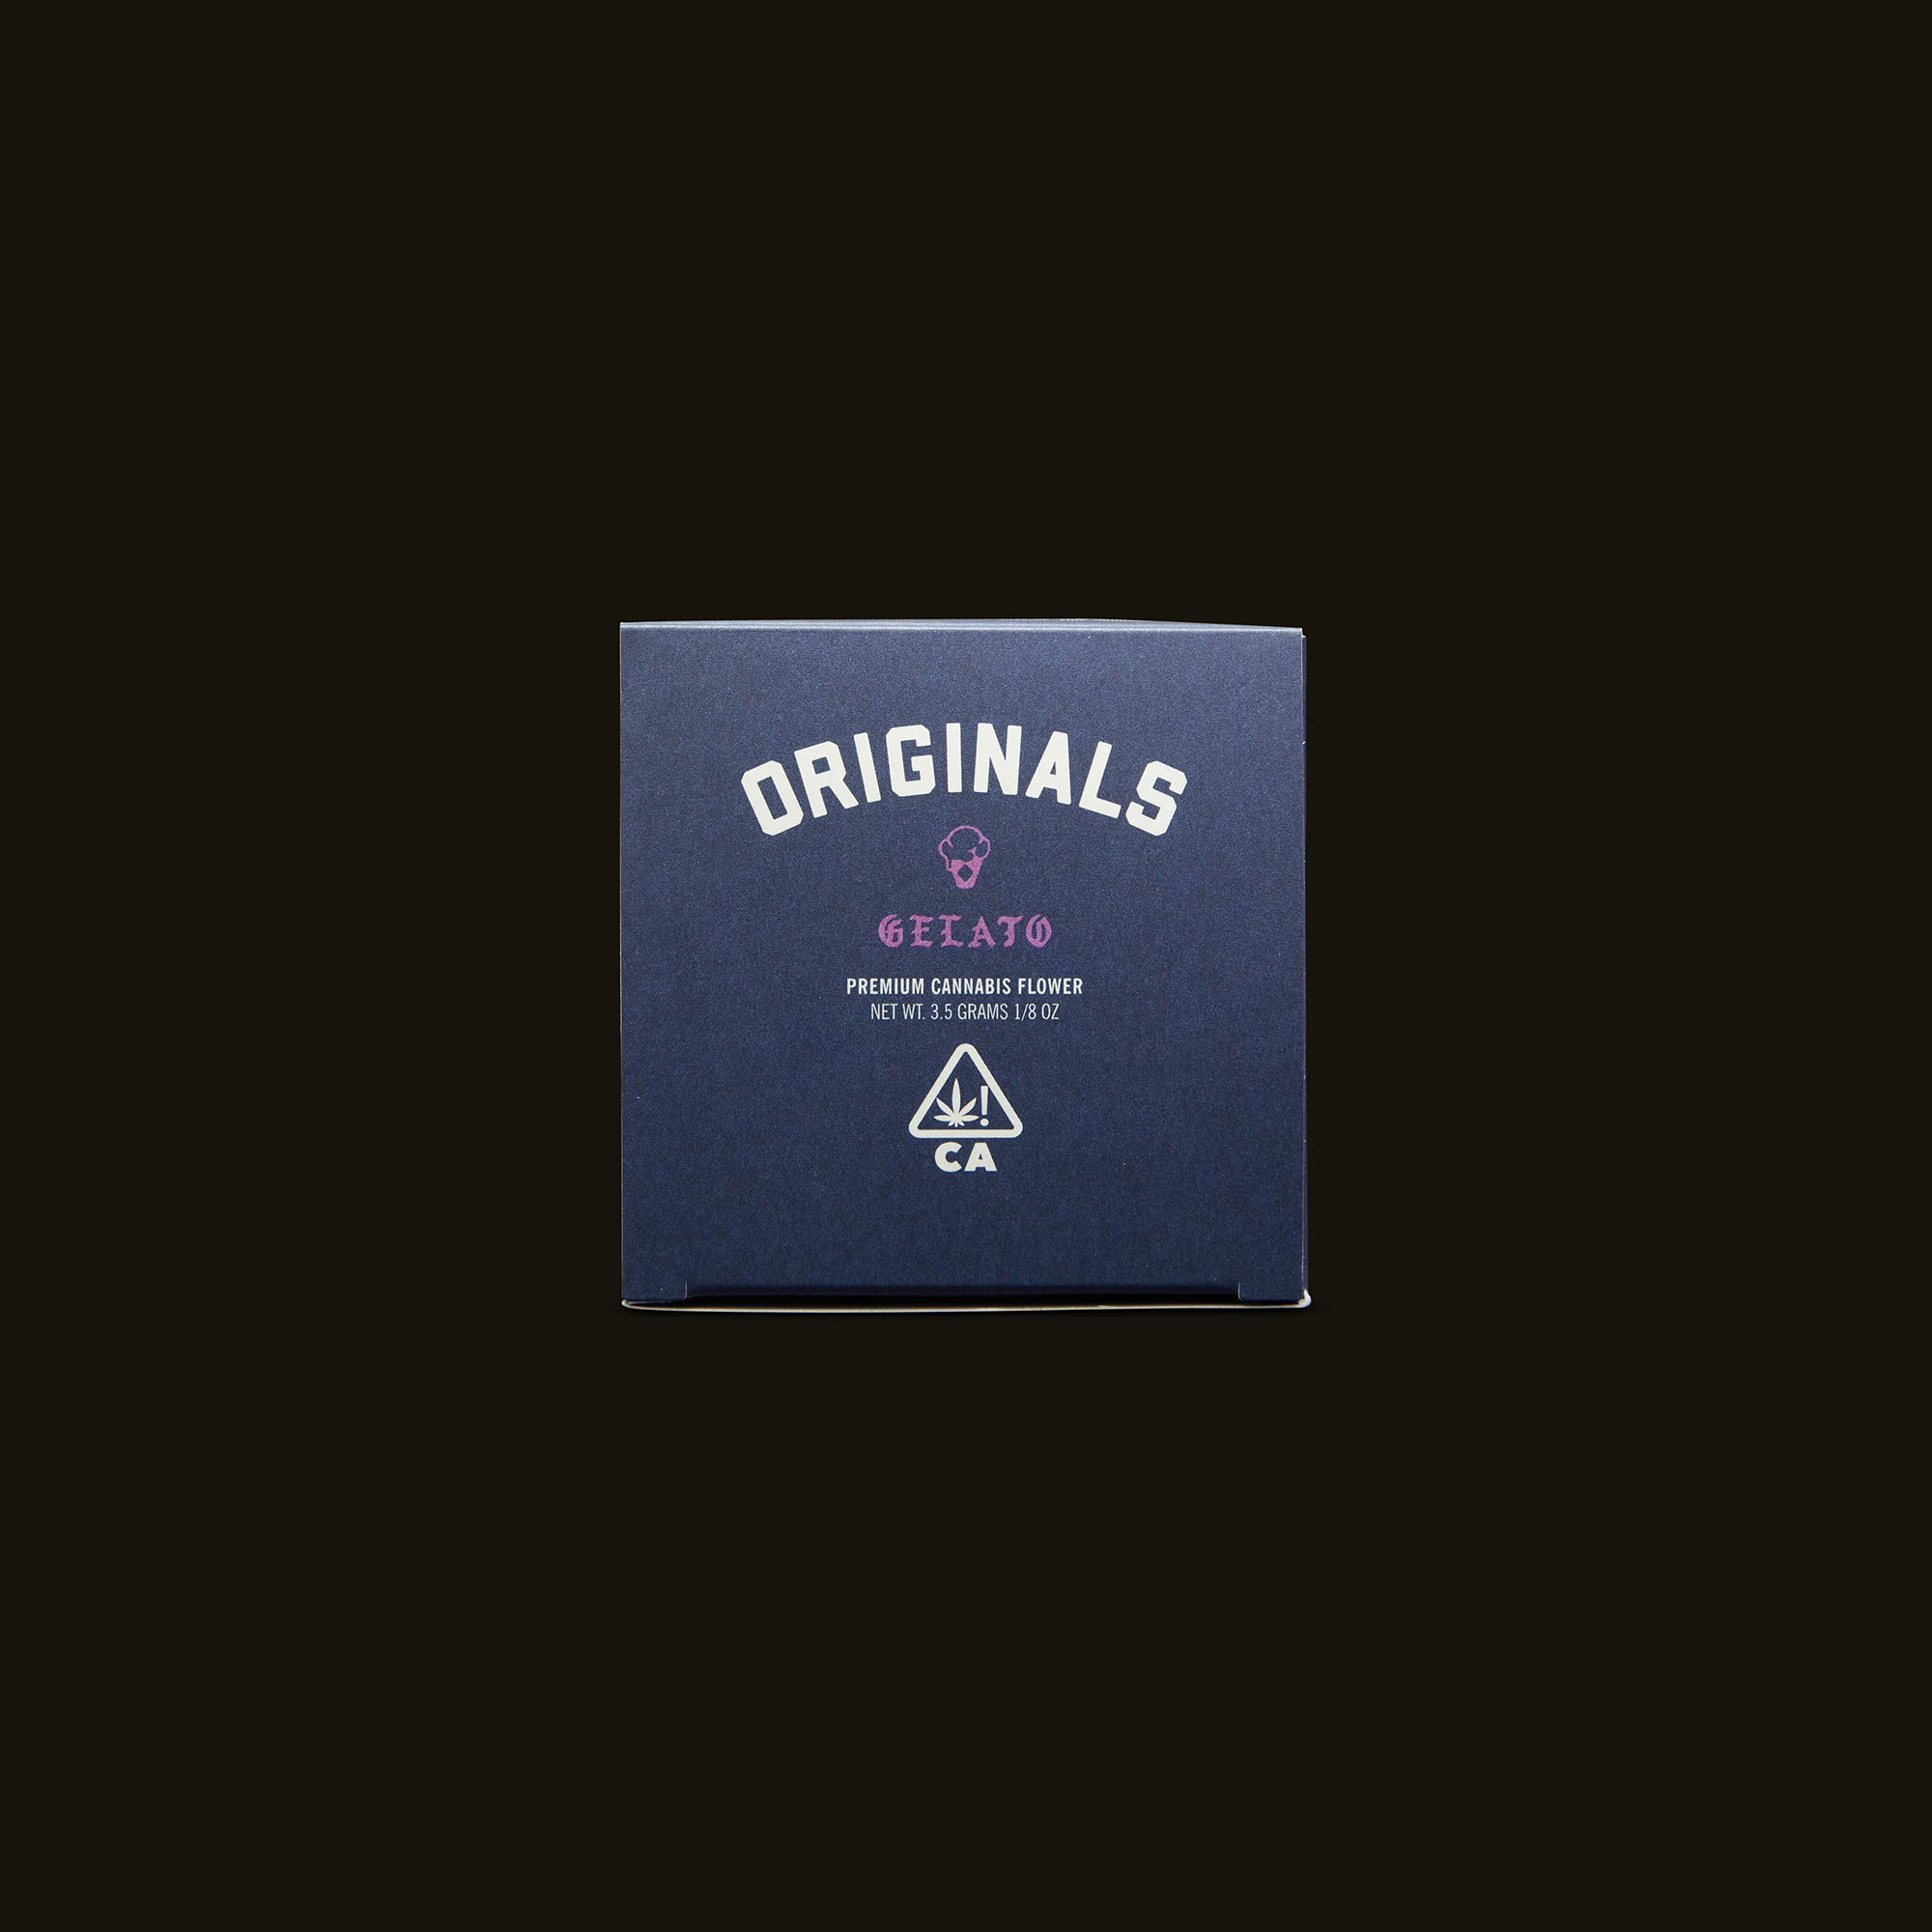 Originals Gelato Top Packaging